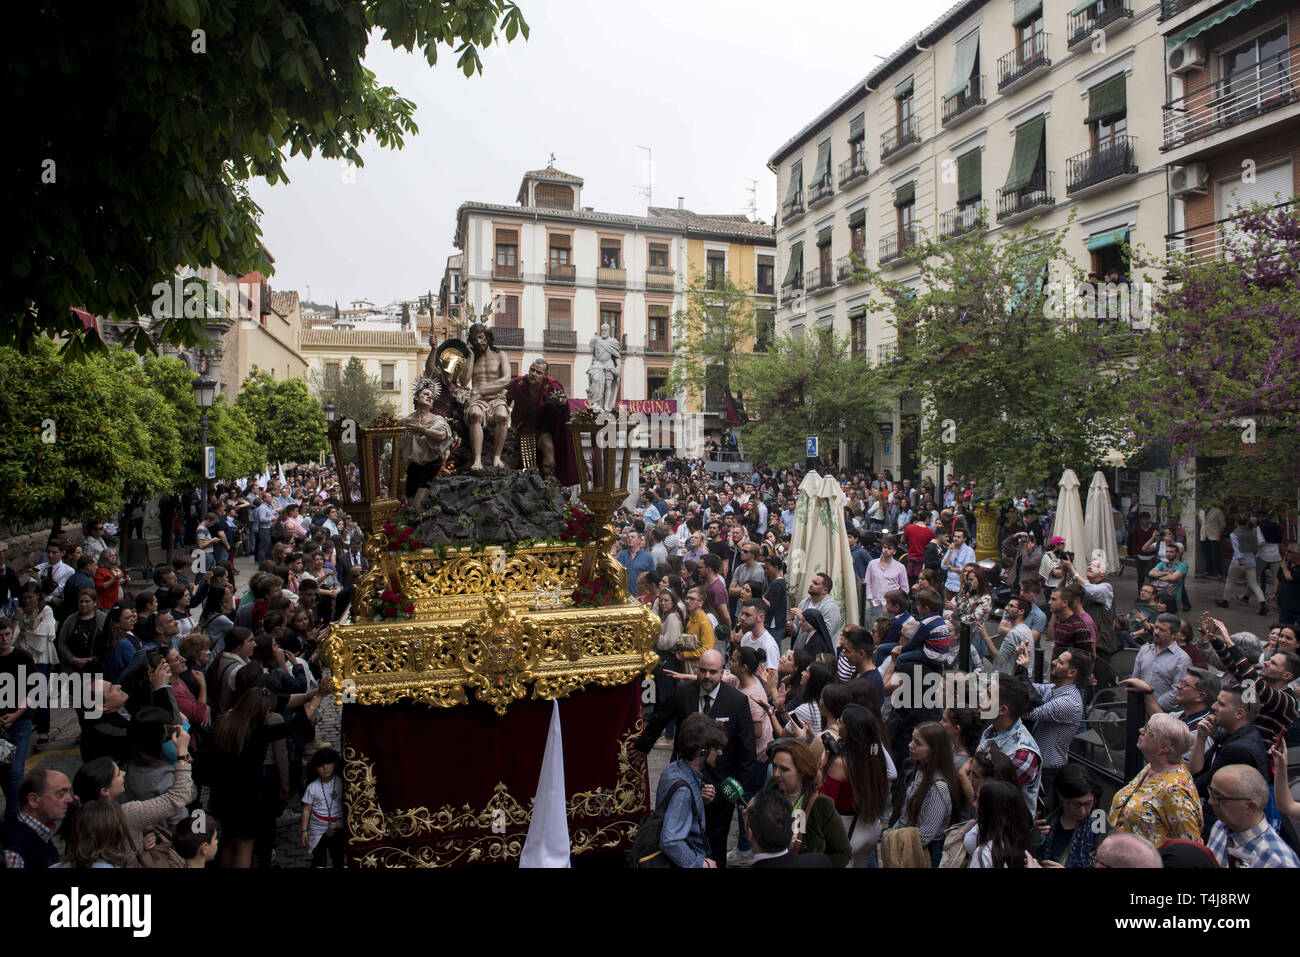 Granada, Spain  17th Apr, 2019  Statue of Jesus Christ from